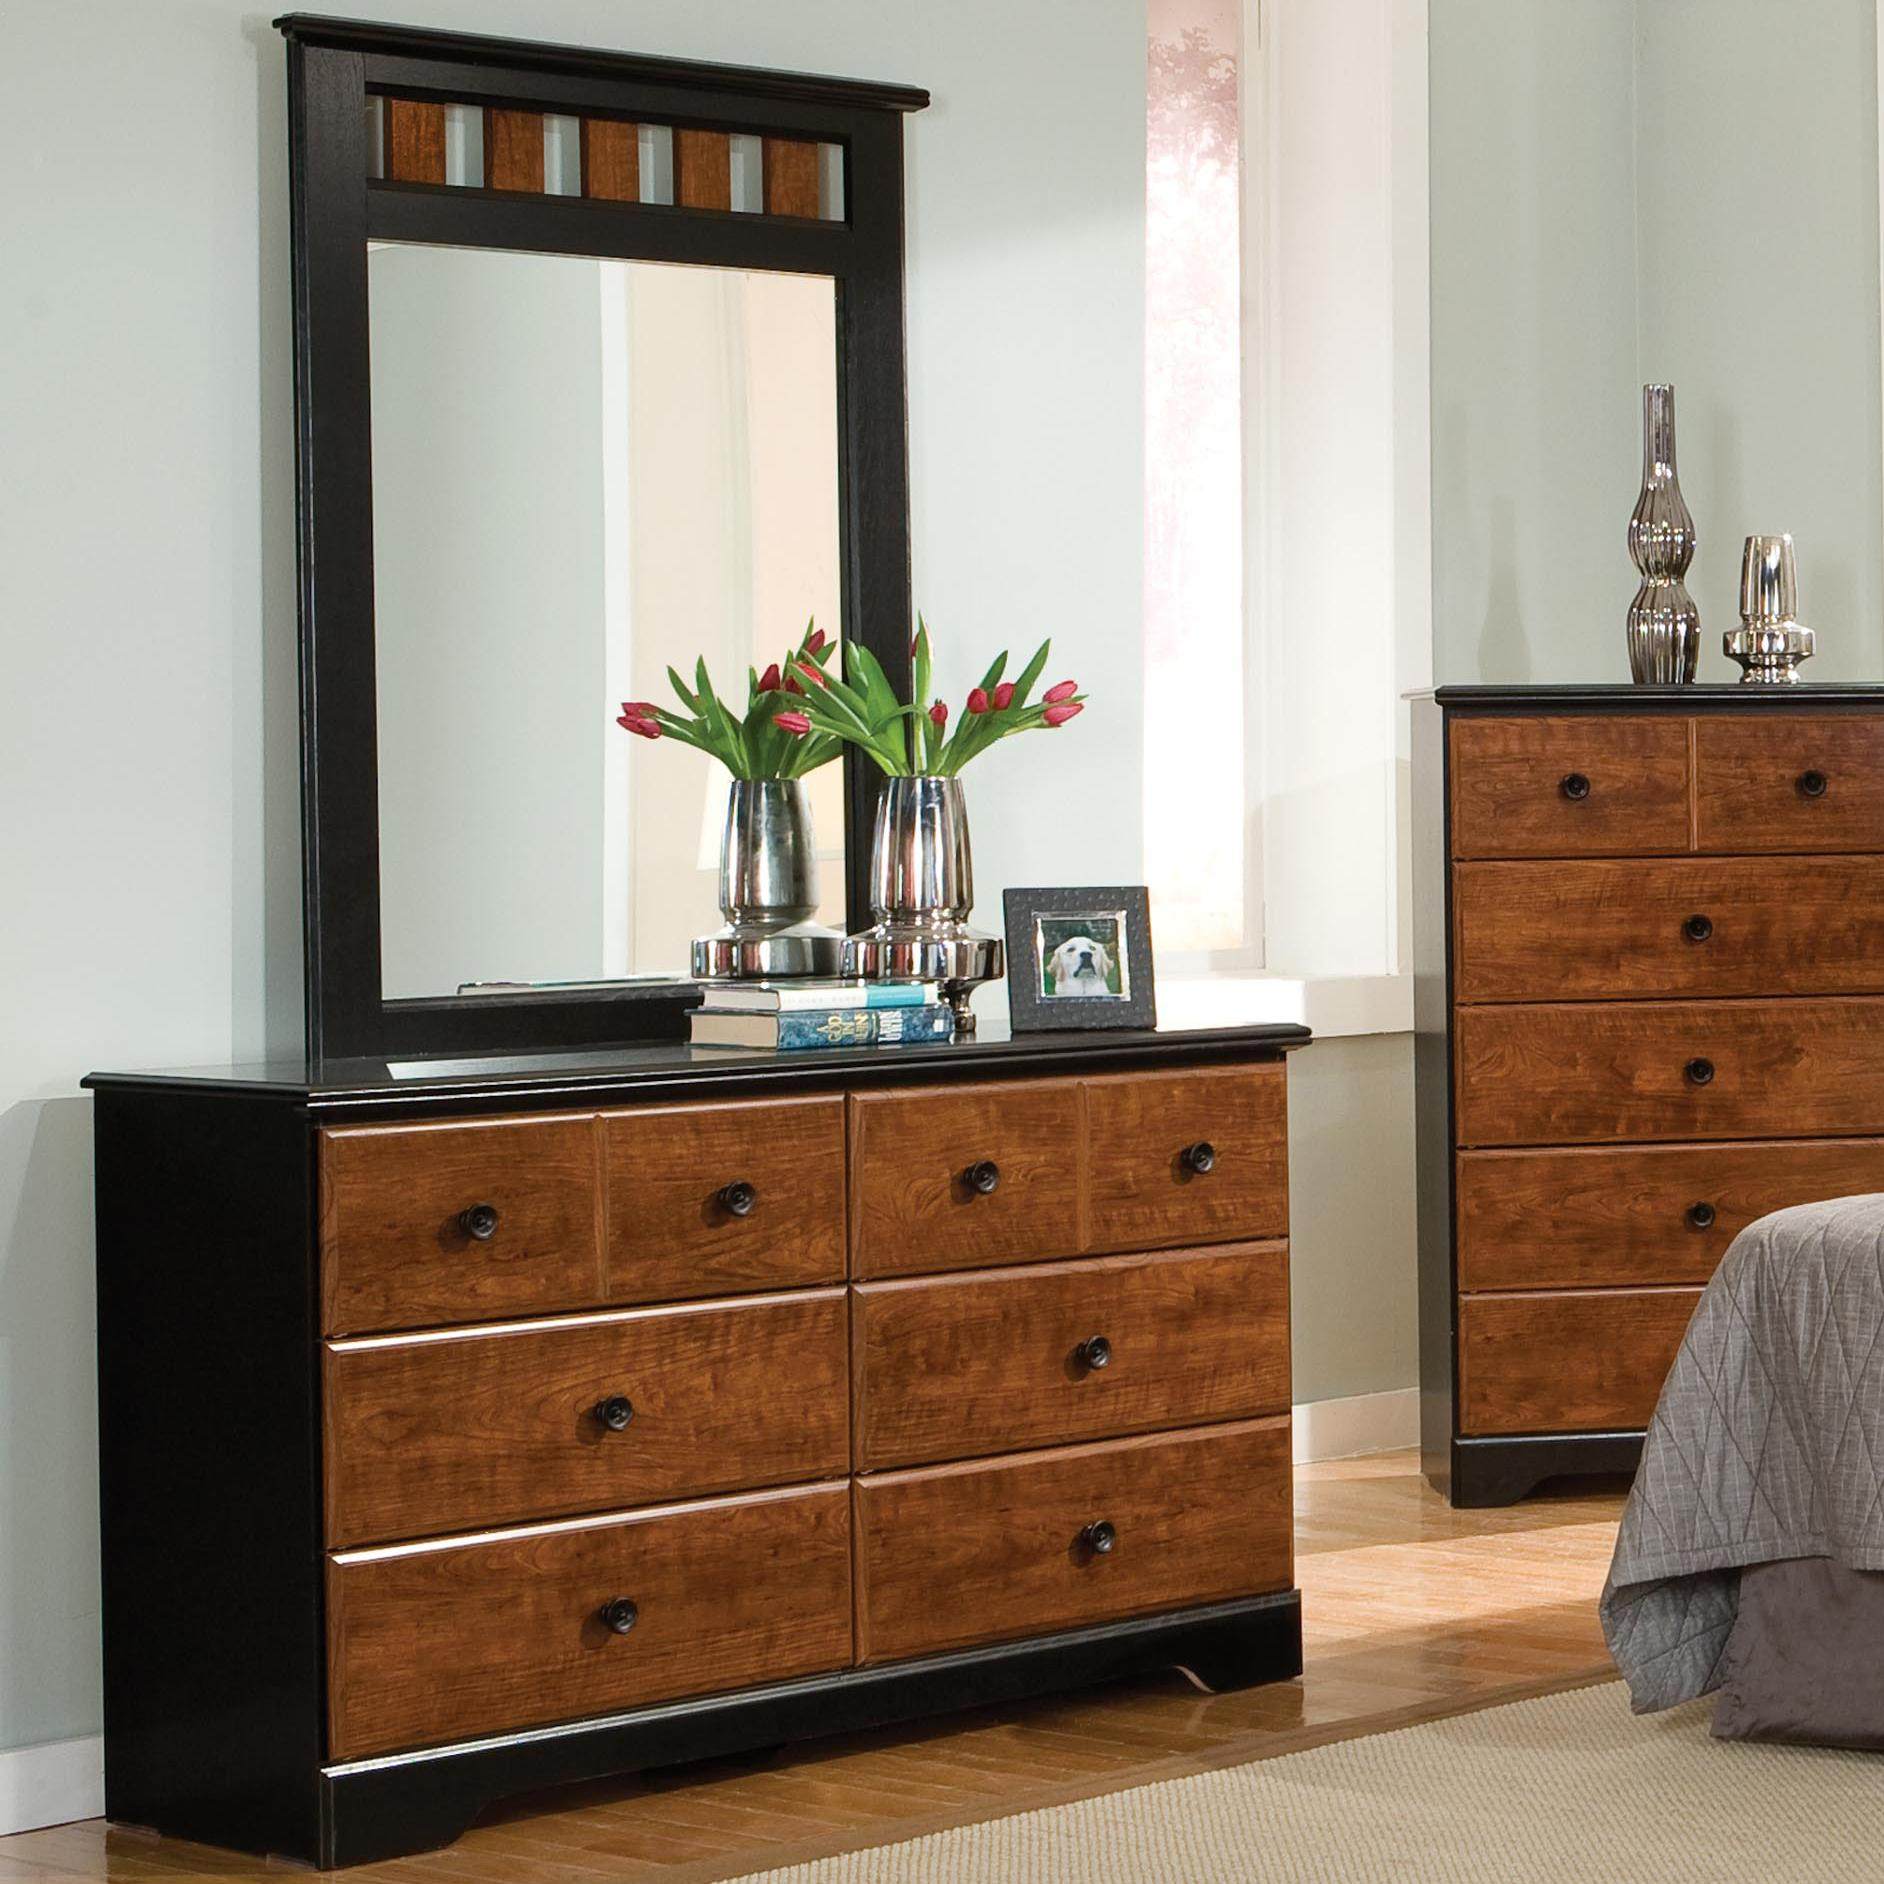 Standard Furniture Steelwood Dresser and Mirror Combinations - Item Number: 61259+68